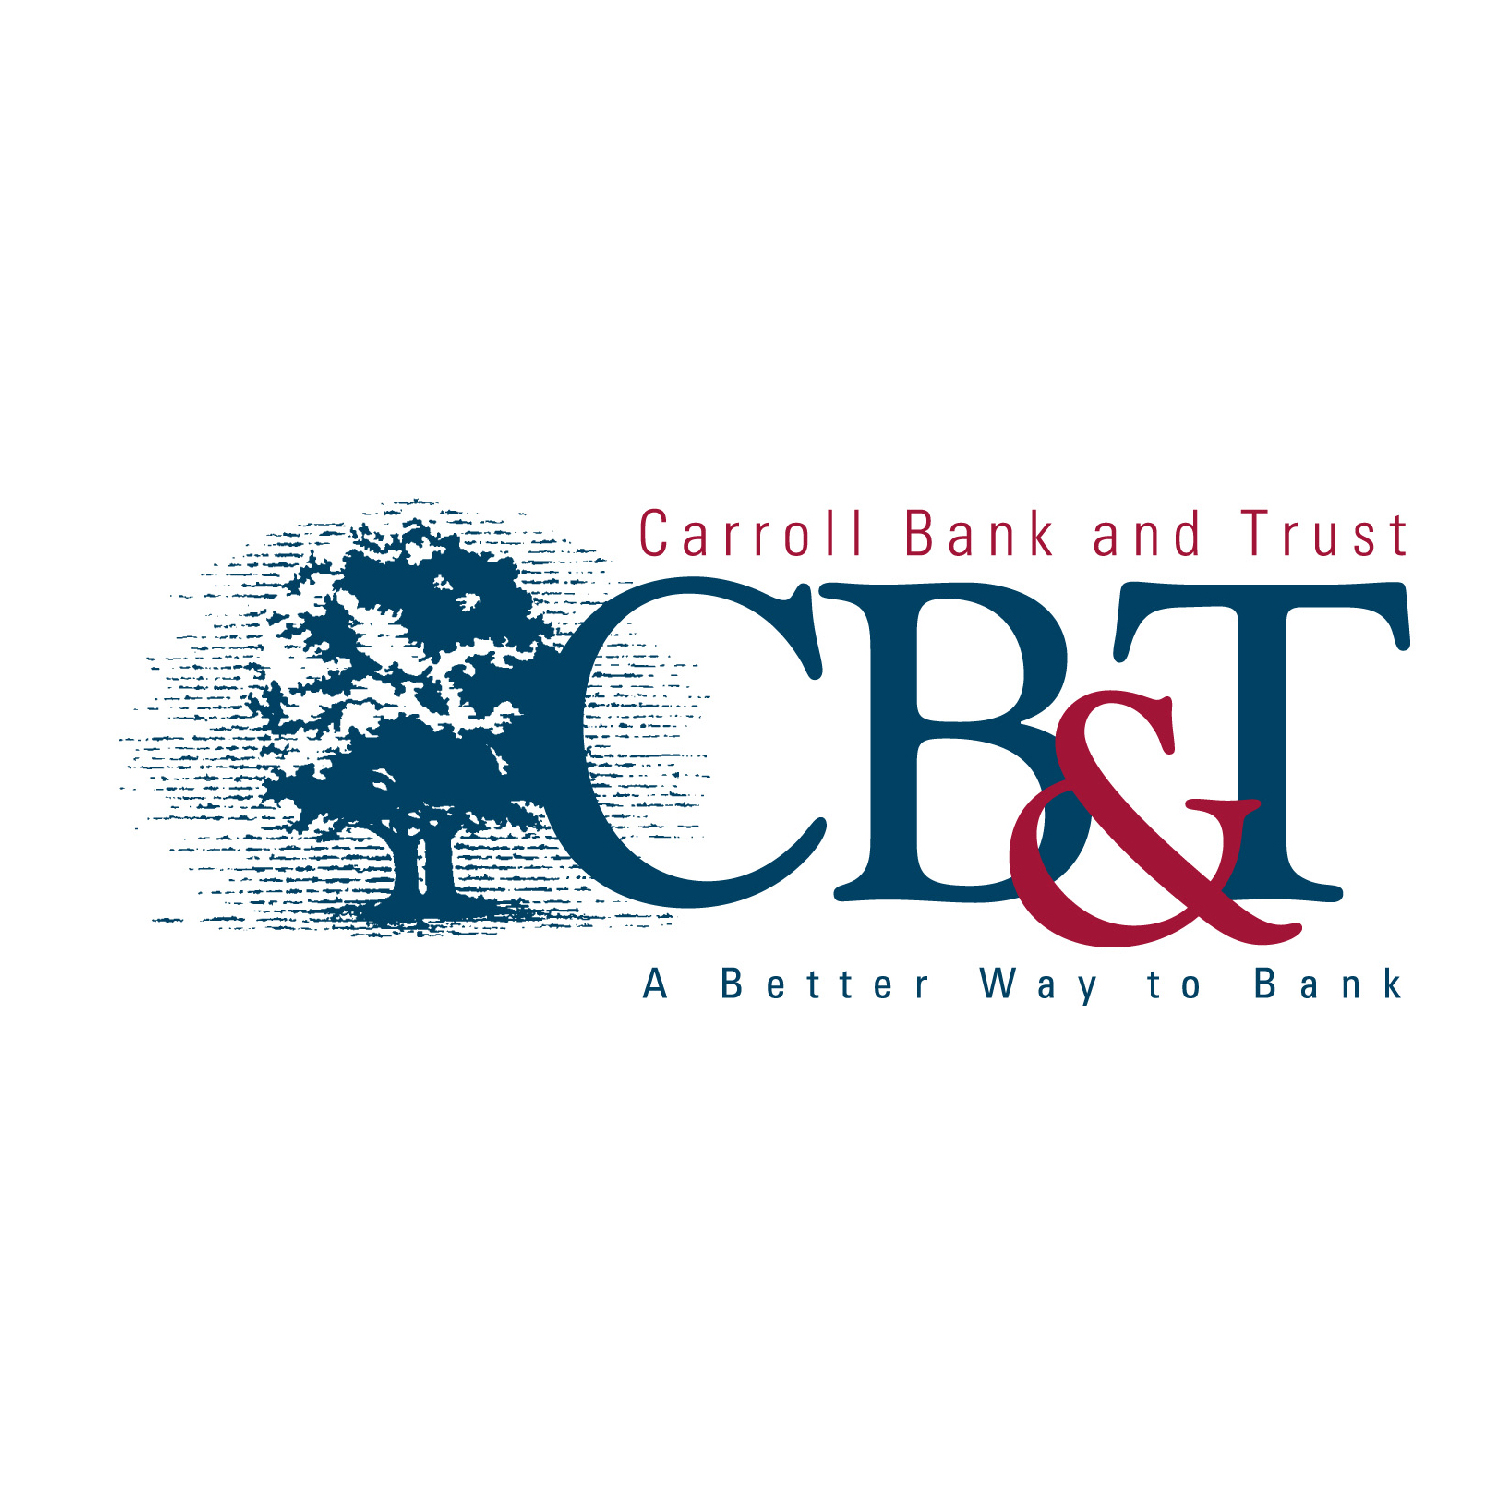 carroll bank & trust.jpg